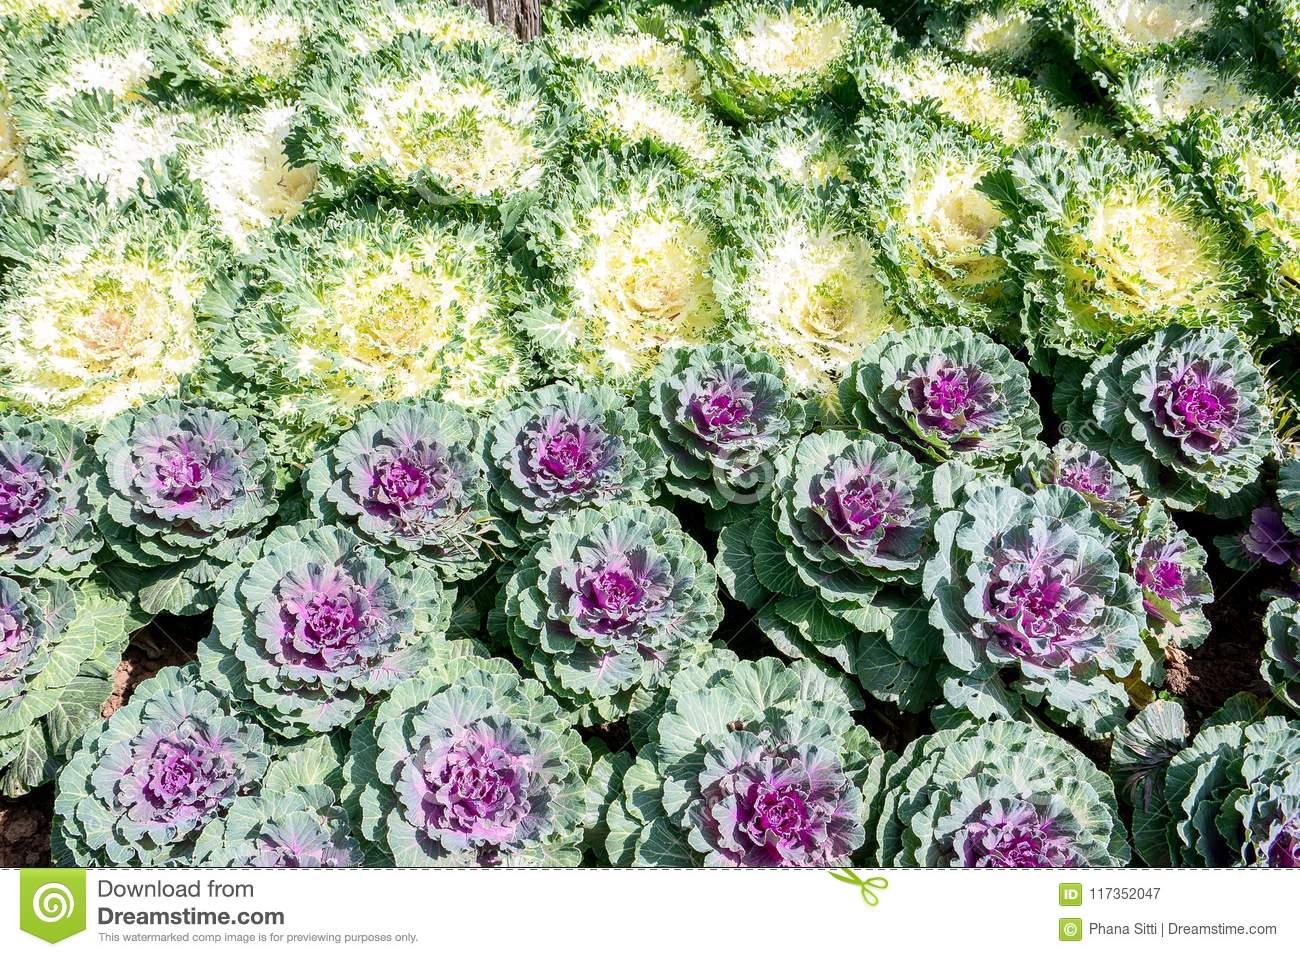 Decorative Cabbage Or Kale Curly Decorative Cabbage Stock Image